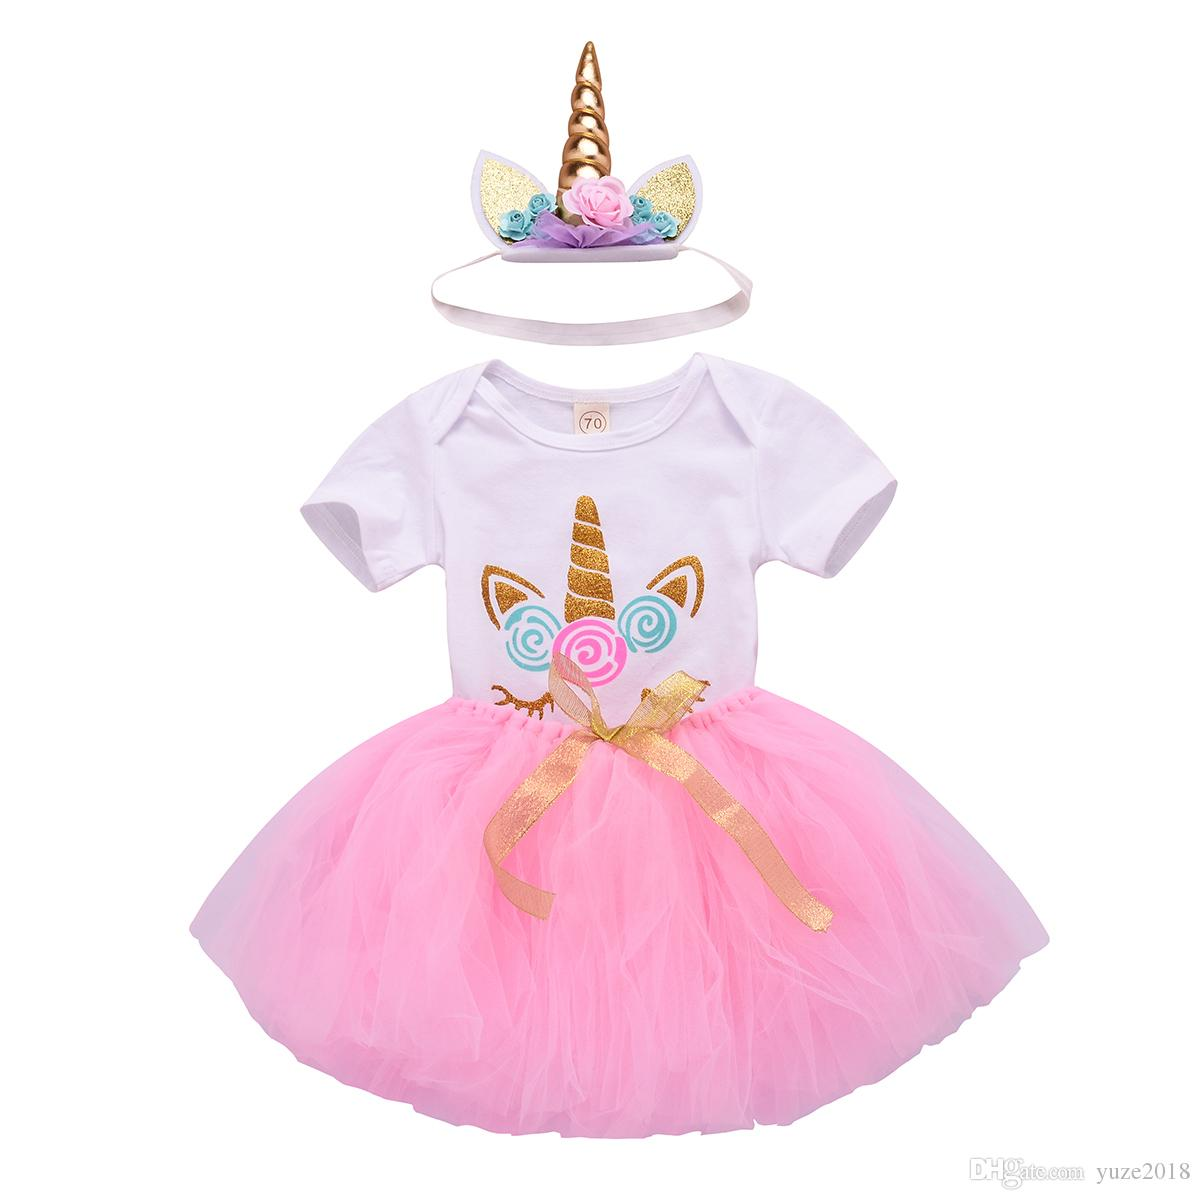 613def702796 2019 Baby Girl 1st Birthday Unicorn Outfits With Headband & Romper & White  Tops & Colorful Lace Tutu Skirts From Yuze2018, $8.04 | DHgate.Com